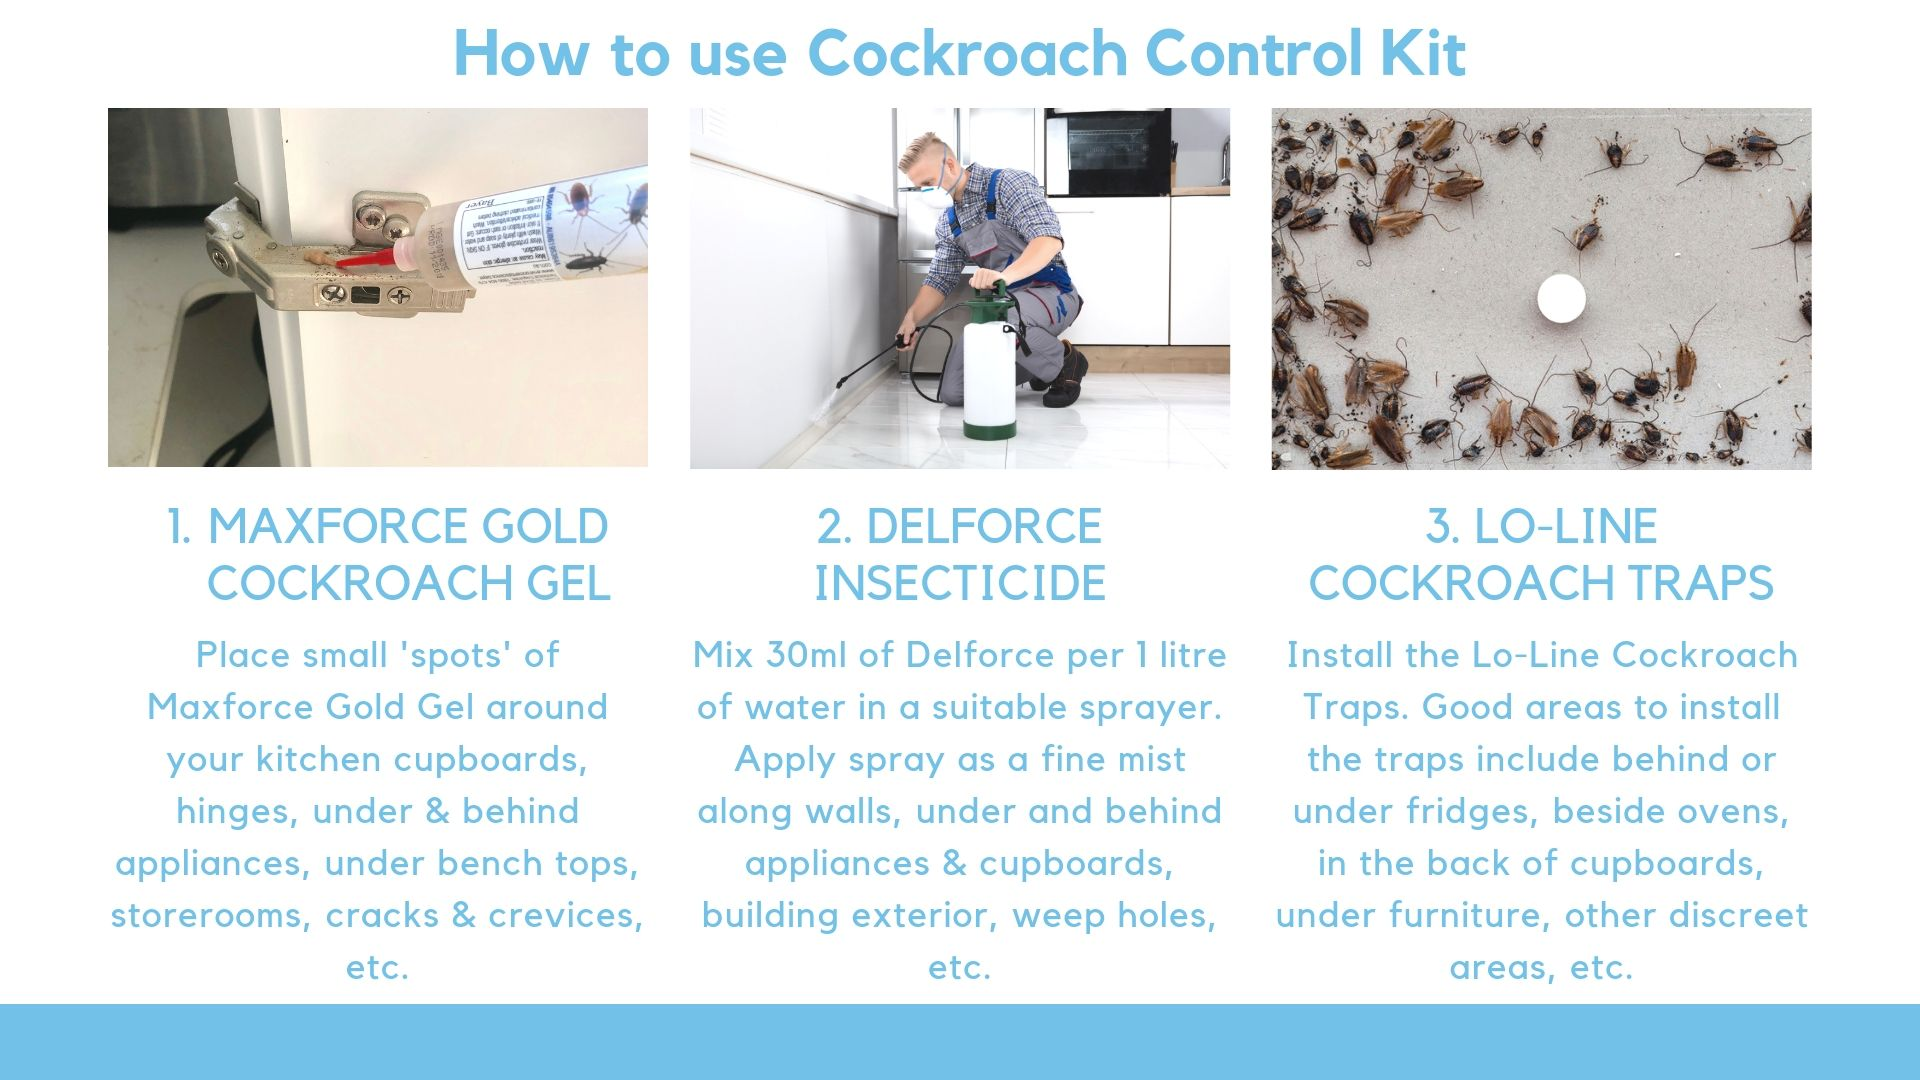 Cockroach Control Kit Instructions